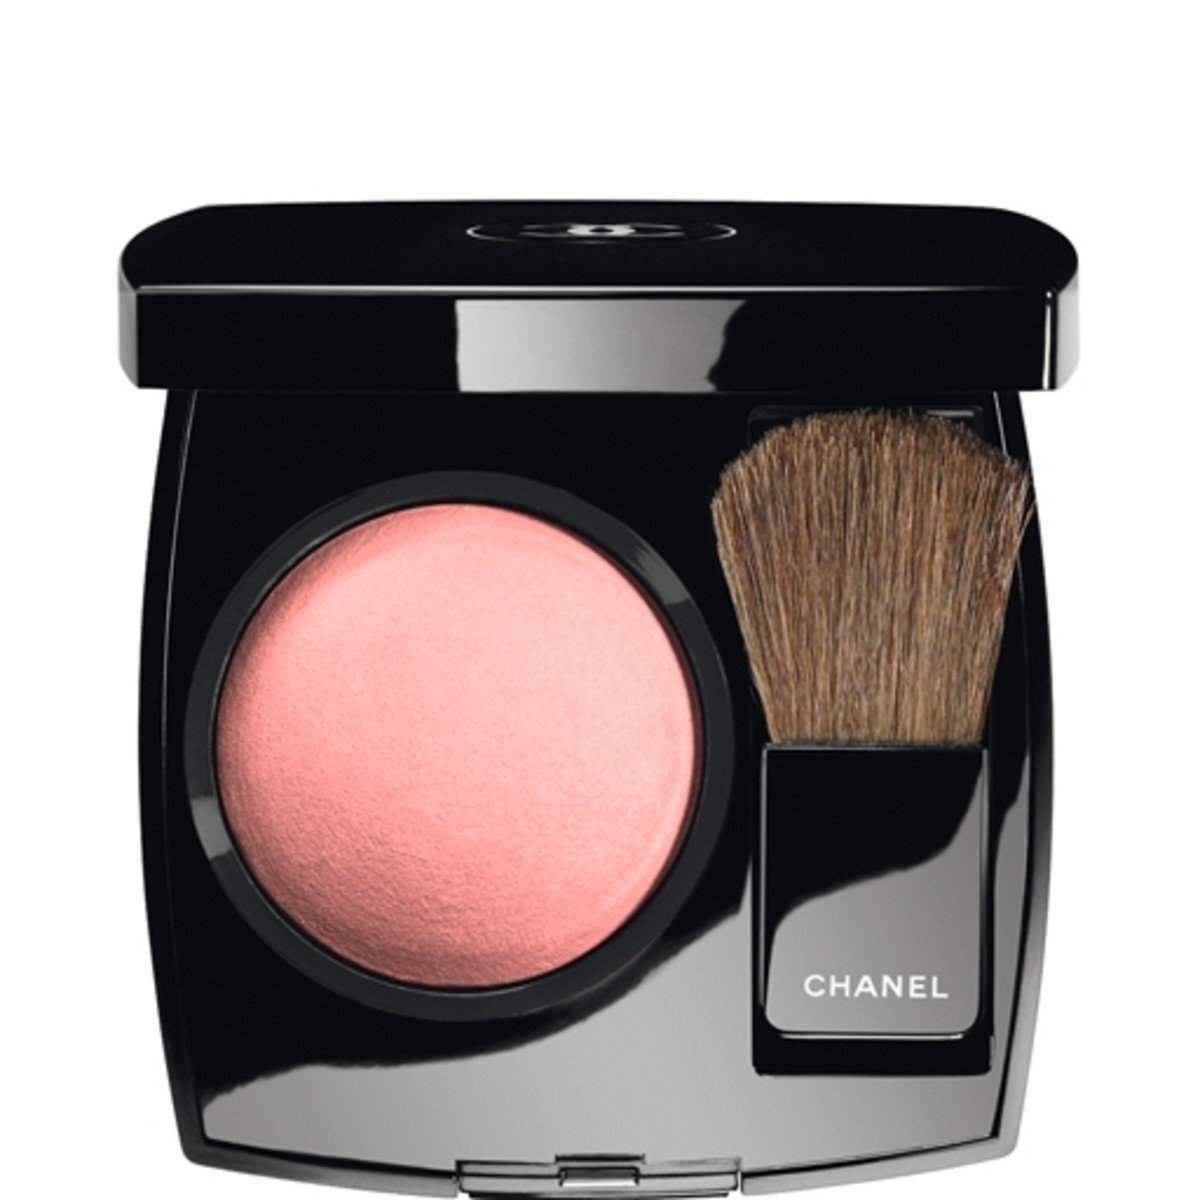 Chanel Joues Contraste Powder Blush in 55 In Love